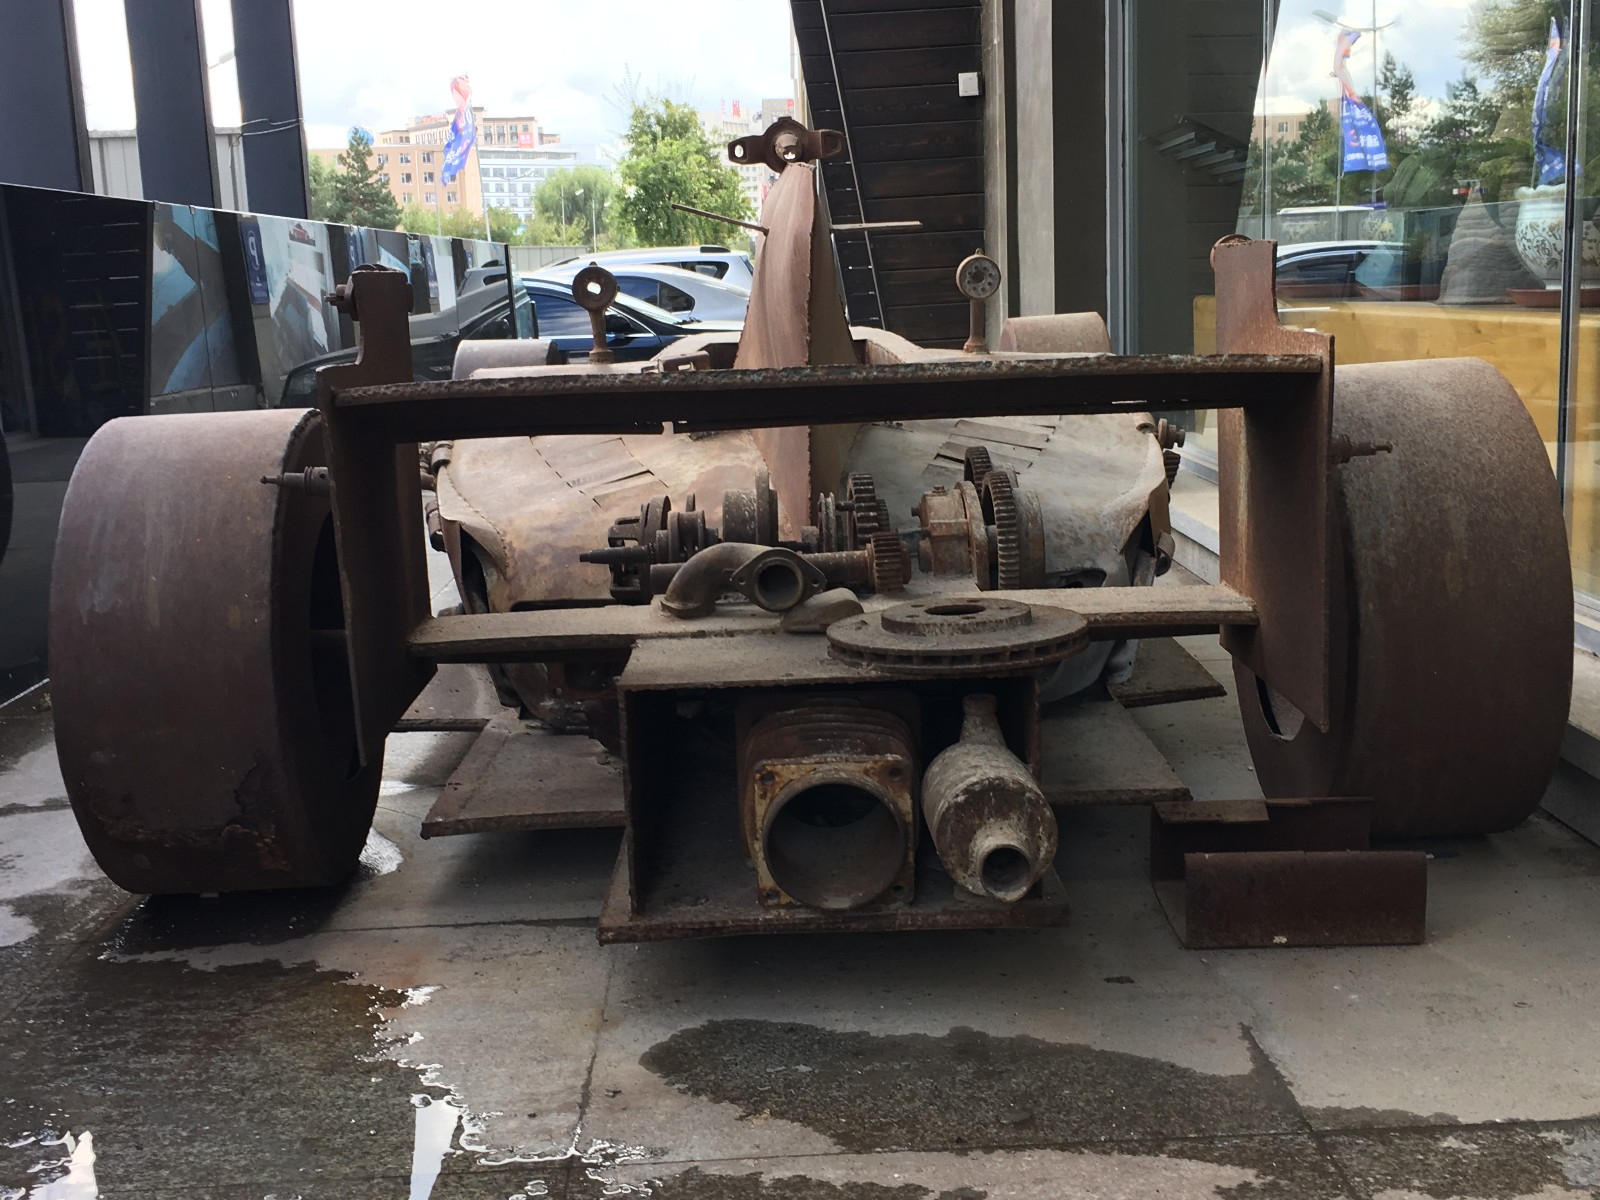 How to scrap car with no log book - The Owner Surnamed Wang Said The Car Was Built Out Of Scrap Iron He Collected From The Recycle Station